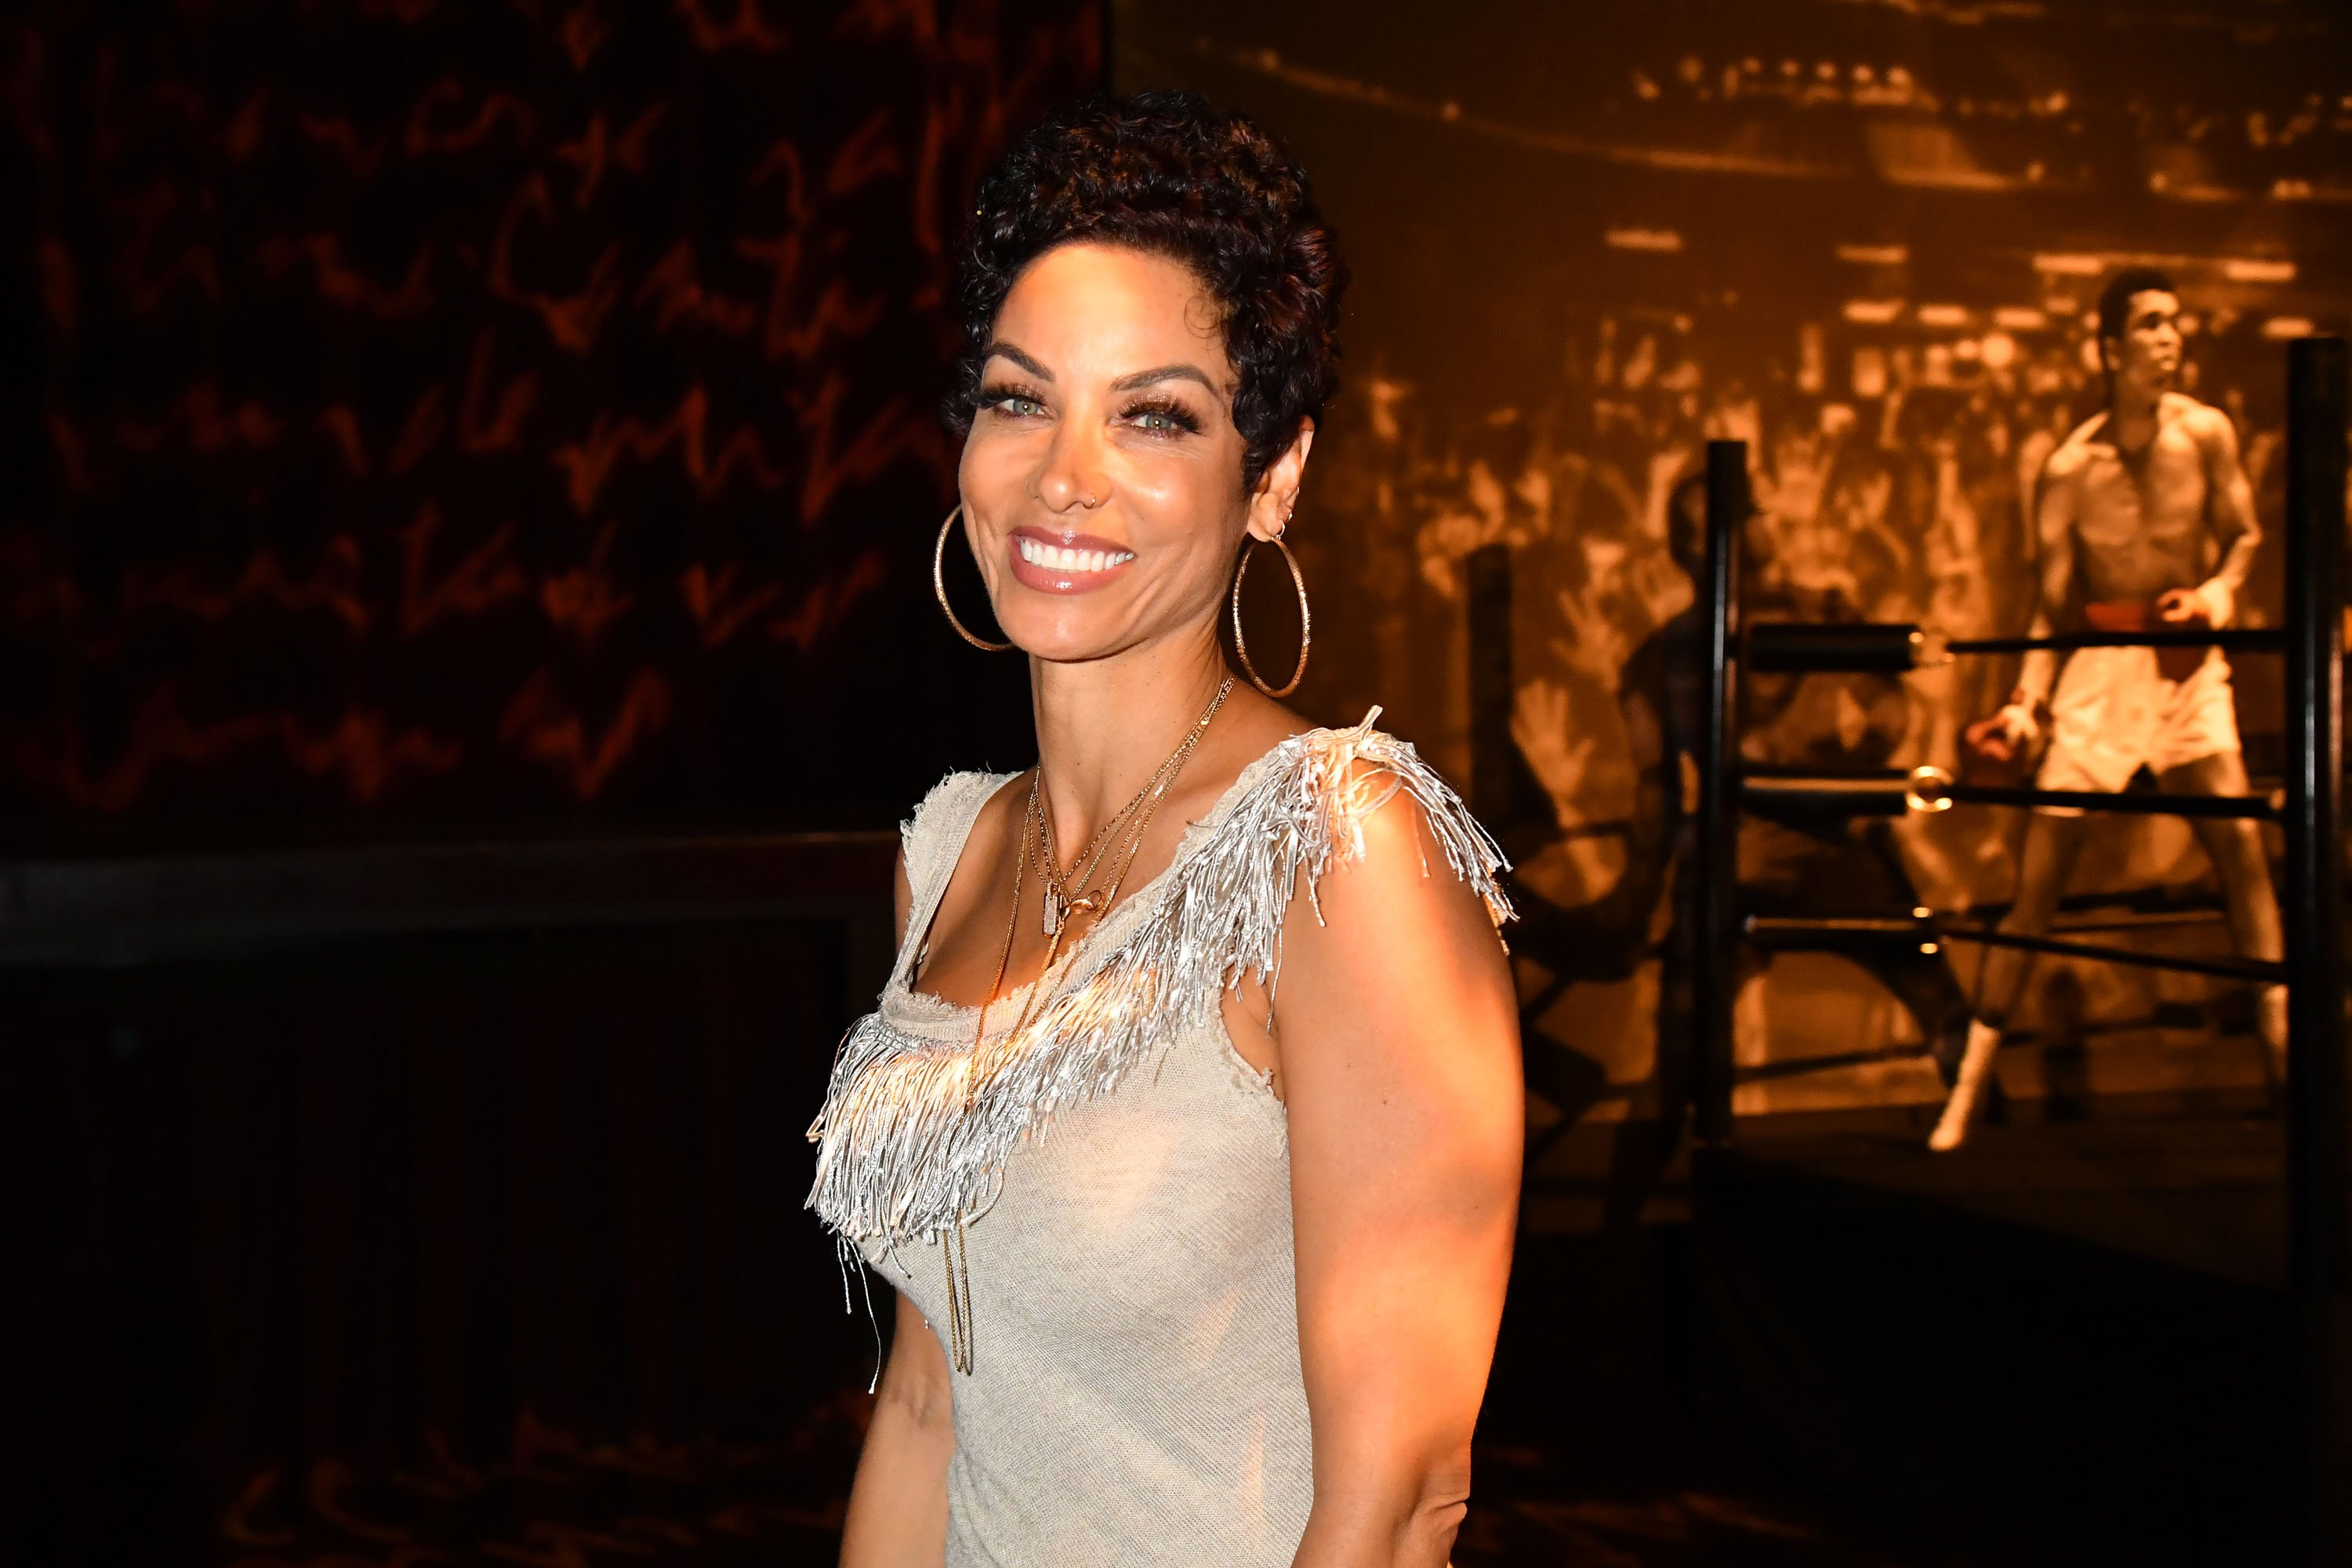 """Nicole Murphy at the after party for """"What's My Name   Muhammad Ali"""" from HBO on May 08, 2019 in Los Angeles, California.  Source: Getty Images"""